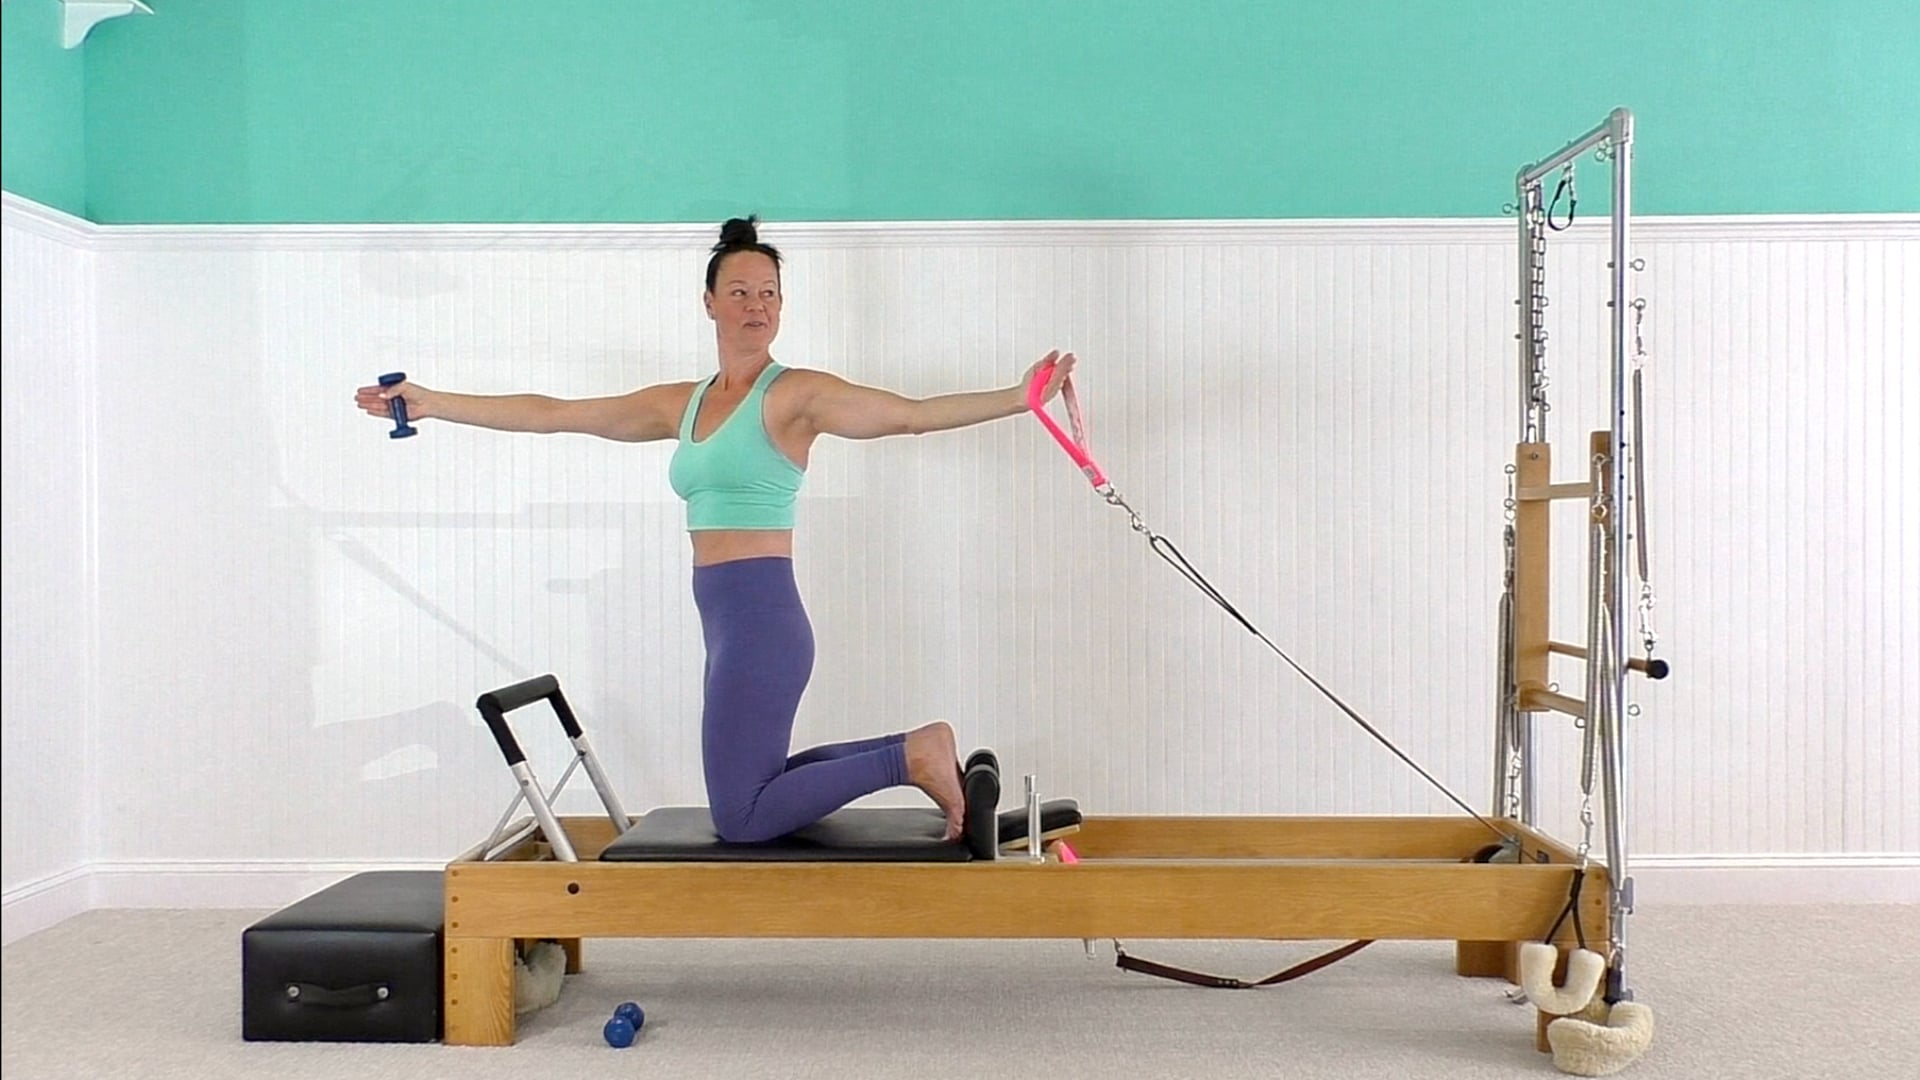 Reformer Workout with 2 lb Weights